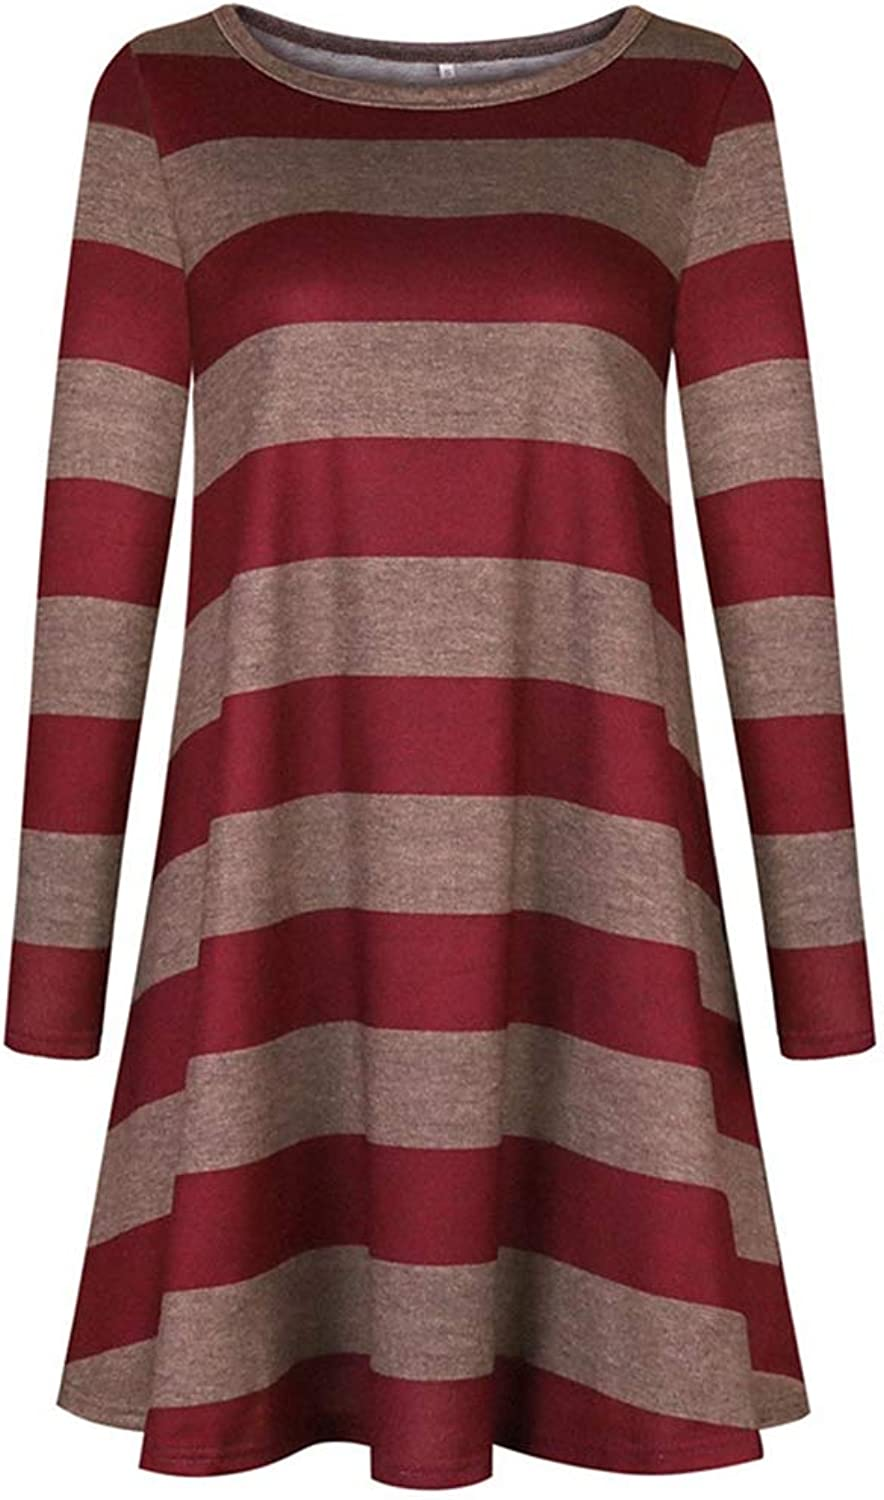 HFOP Dress Women's Dress Long Sleeve Striped Swing TShirt Dress with Pocket